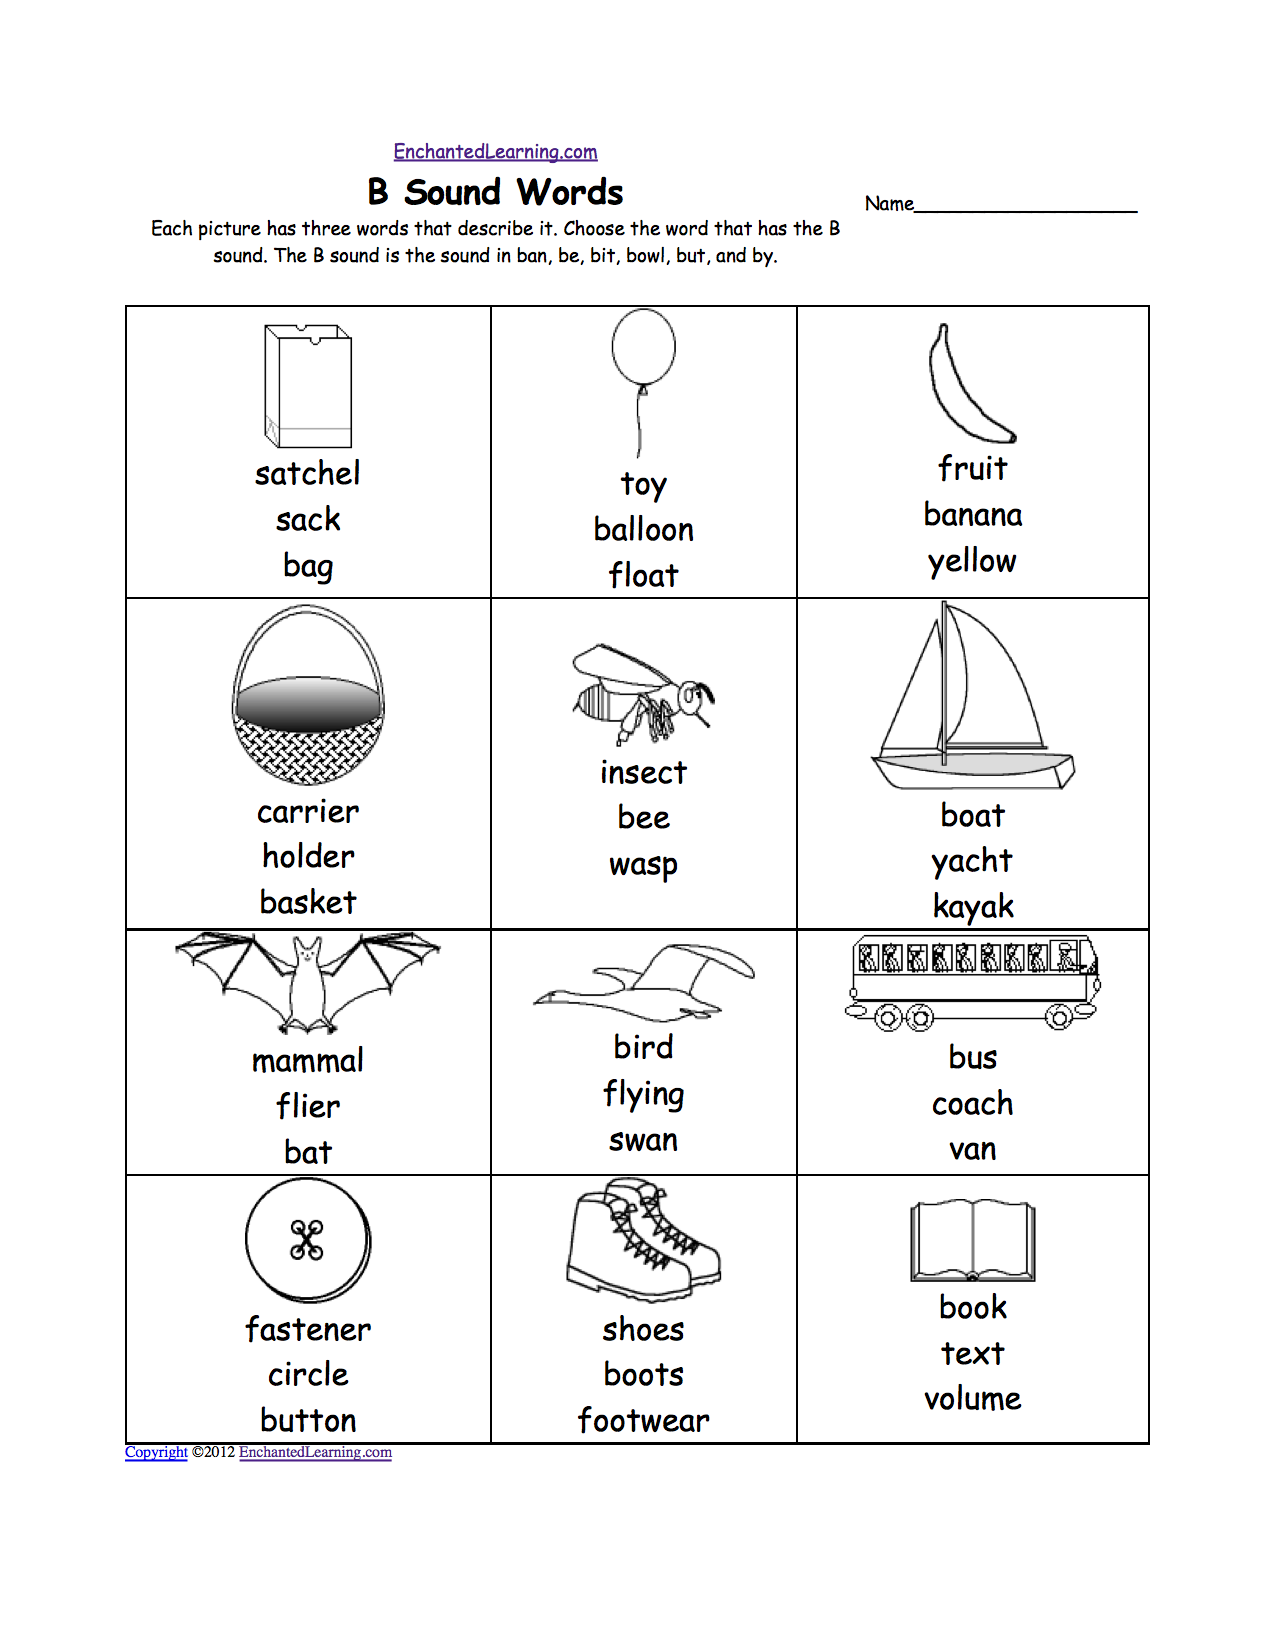 Aldiablosus  Scenic Phonics Worksheets Multiple Choice Worksheets To Print  With Licious Quotbquot Sound Phonics Worksheet Multiple Choice Each Picture Has Three Words That Describe It Choose The Word That Has A Quotbquot Sound The Quotbquot Sound Is The Sound  With Nice Monthly Home Budget Worksheet Also Rube Goldberg Machine Worksheet In Addition Letter A And B Worksheets And Preamble Scramble Worksheet As Well As Substitution Method Worksheets With Answers Additionally Halloween Worksheets Preschool From Enchantedlearningcom With Aldiablosus  Licious Phonics Worksheets Multiple Choice Worksheets To Print  With Nice Quotbquot Sound Phonics Worksheet Multiple Choice Each Picture Has Three Words That Describe It Choose The Word That Has A Quotbquot Sound The Quotbquot Sound Is The Sound  And Scenic Monthly Home Budget Worksheet Also Rube Goldberg Machine Worksheet In Addition Letter A And B Worksheets From Enchantedlearningcom